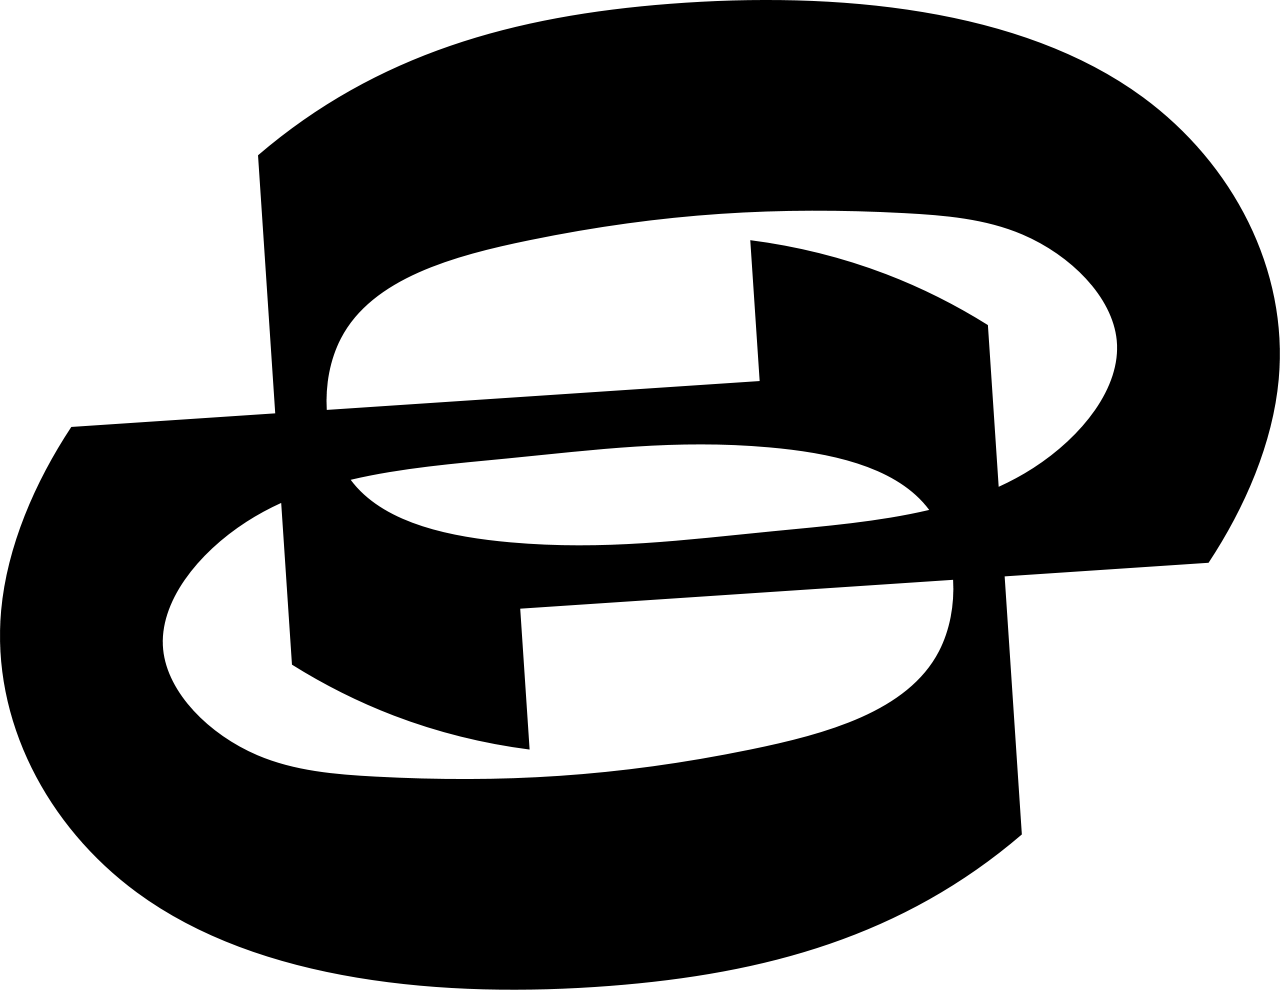 Last Chaos svg, Download Last Chaos svg for free 2019